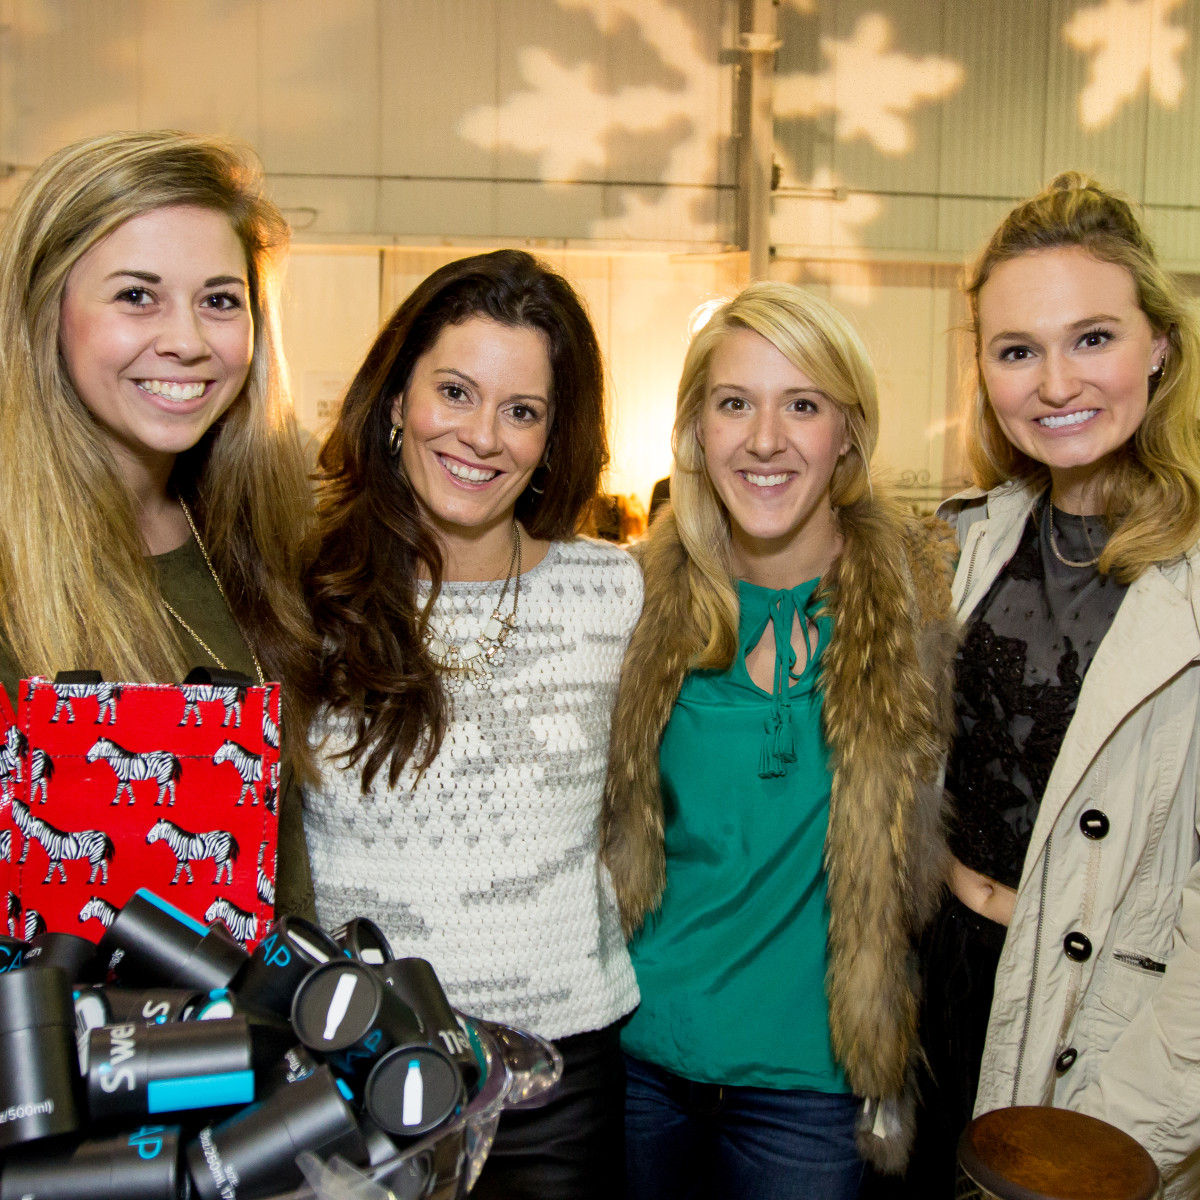 News, CM Holiday Pop-Up Shop, Dec. 2015, Makenzie Rogers, Katie Scroggins (owner of Monkee's), Katie Corts, Westleigh Cutts